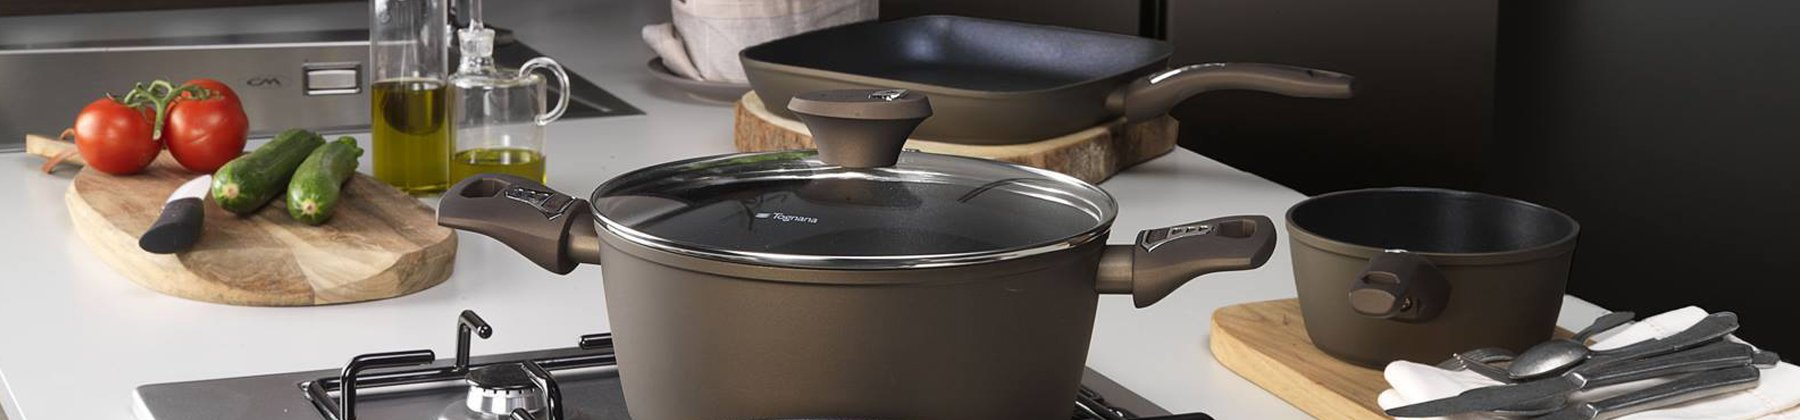 Photo of Tognana cookware on stove.